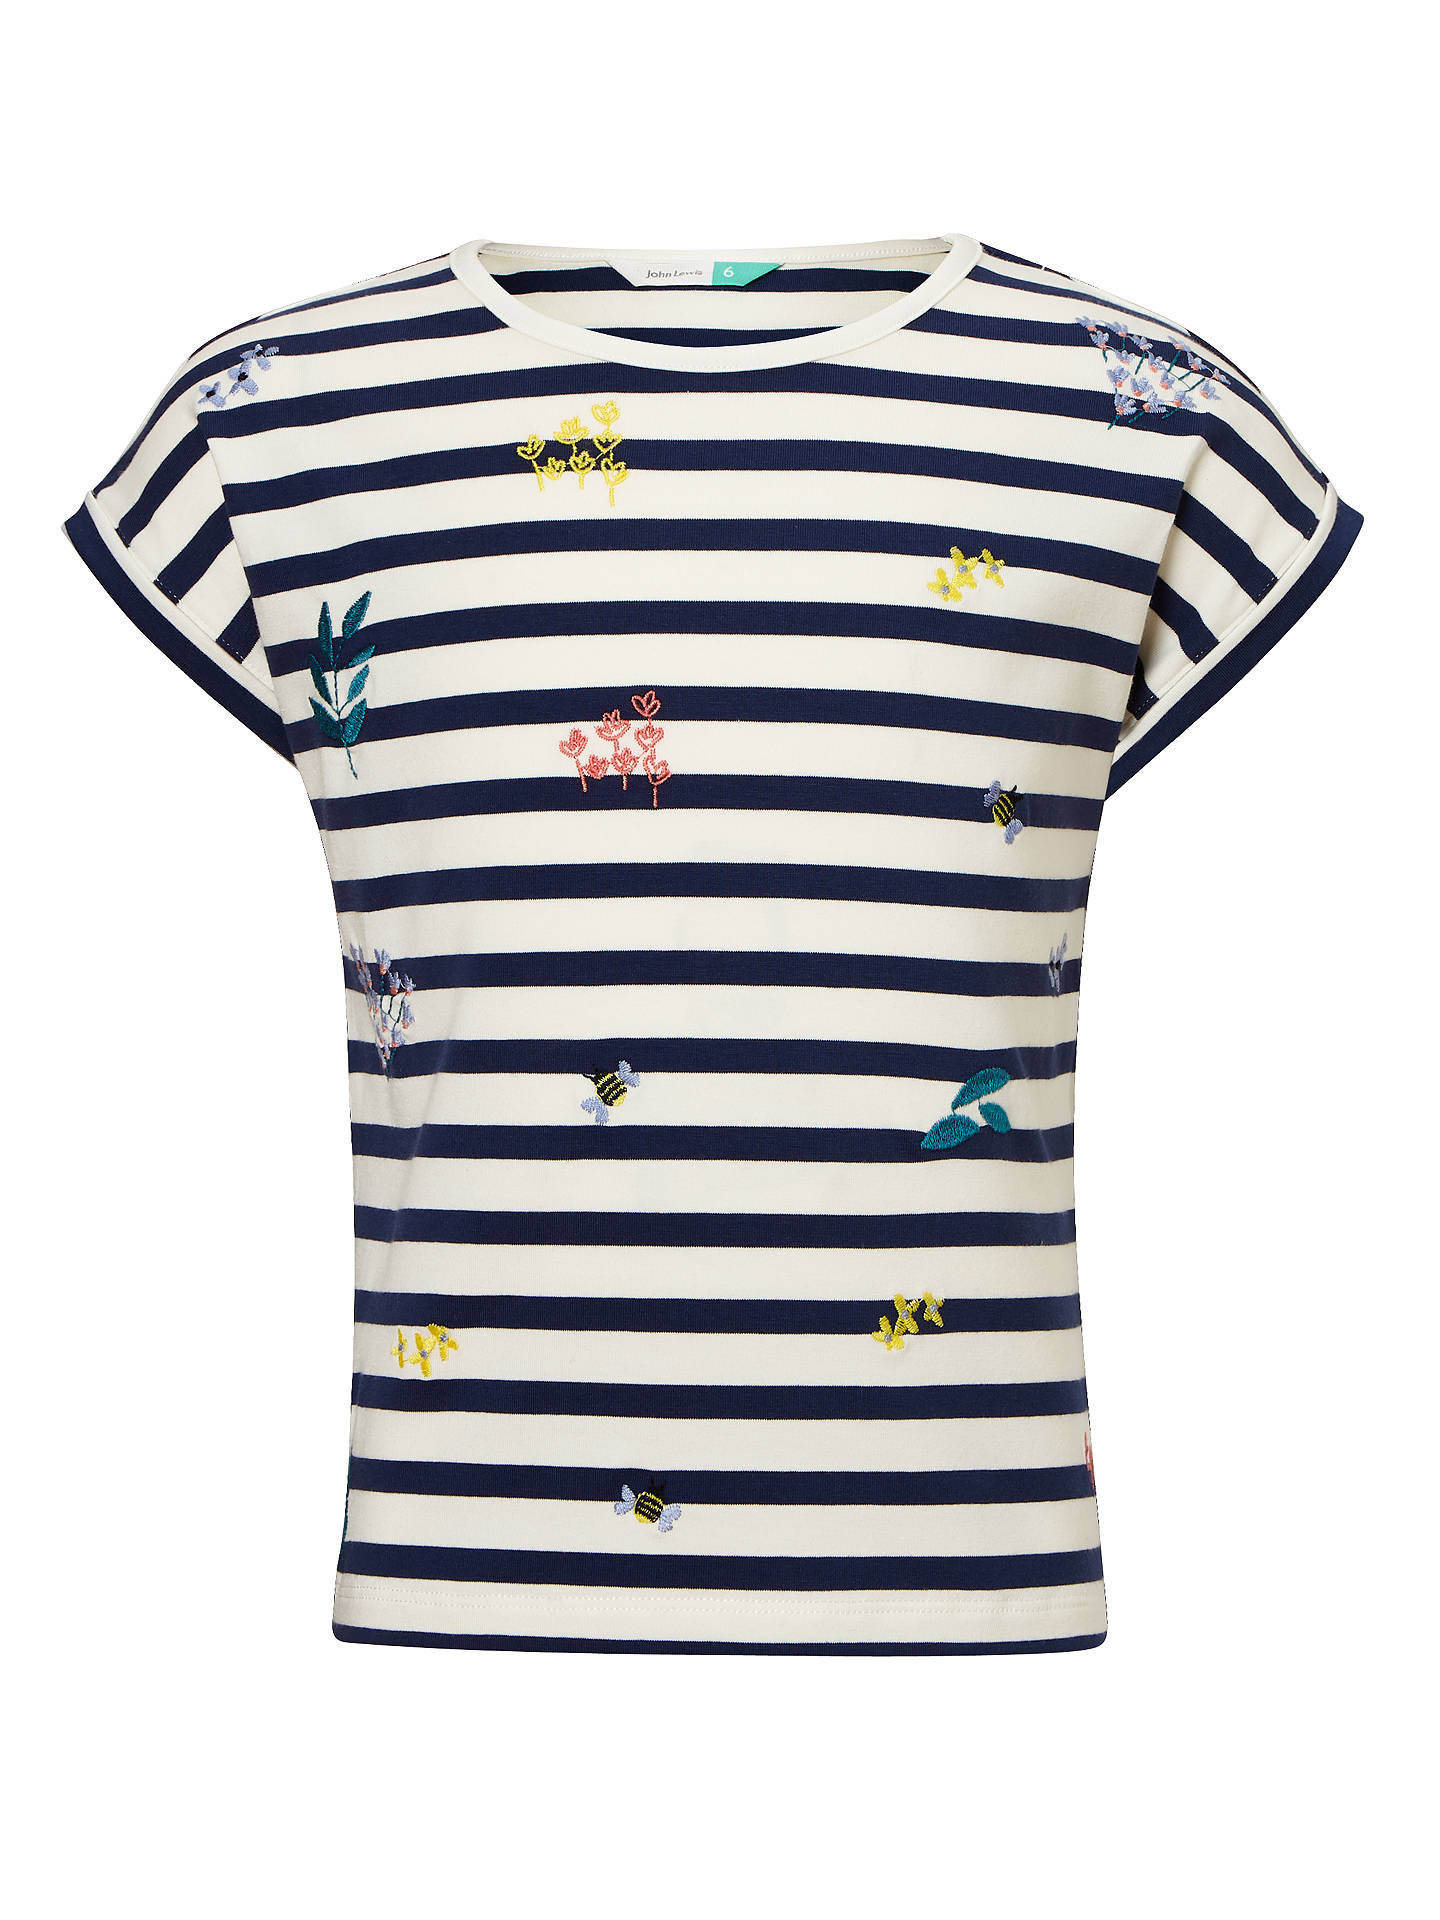 280563324d5 Buy John Lewis   Partners Girls  Stripe Embroidered T-Shirt